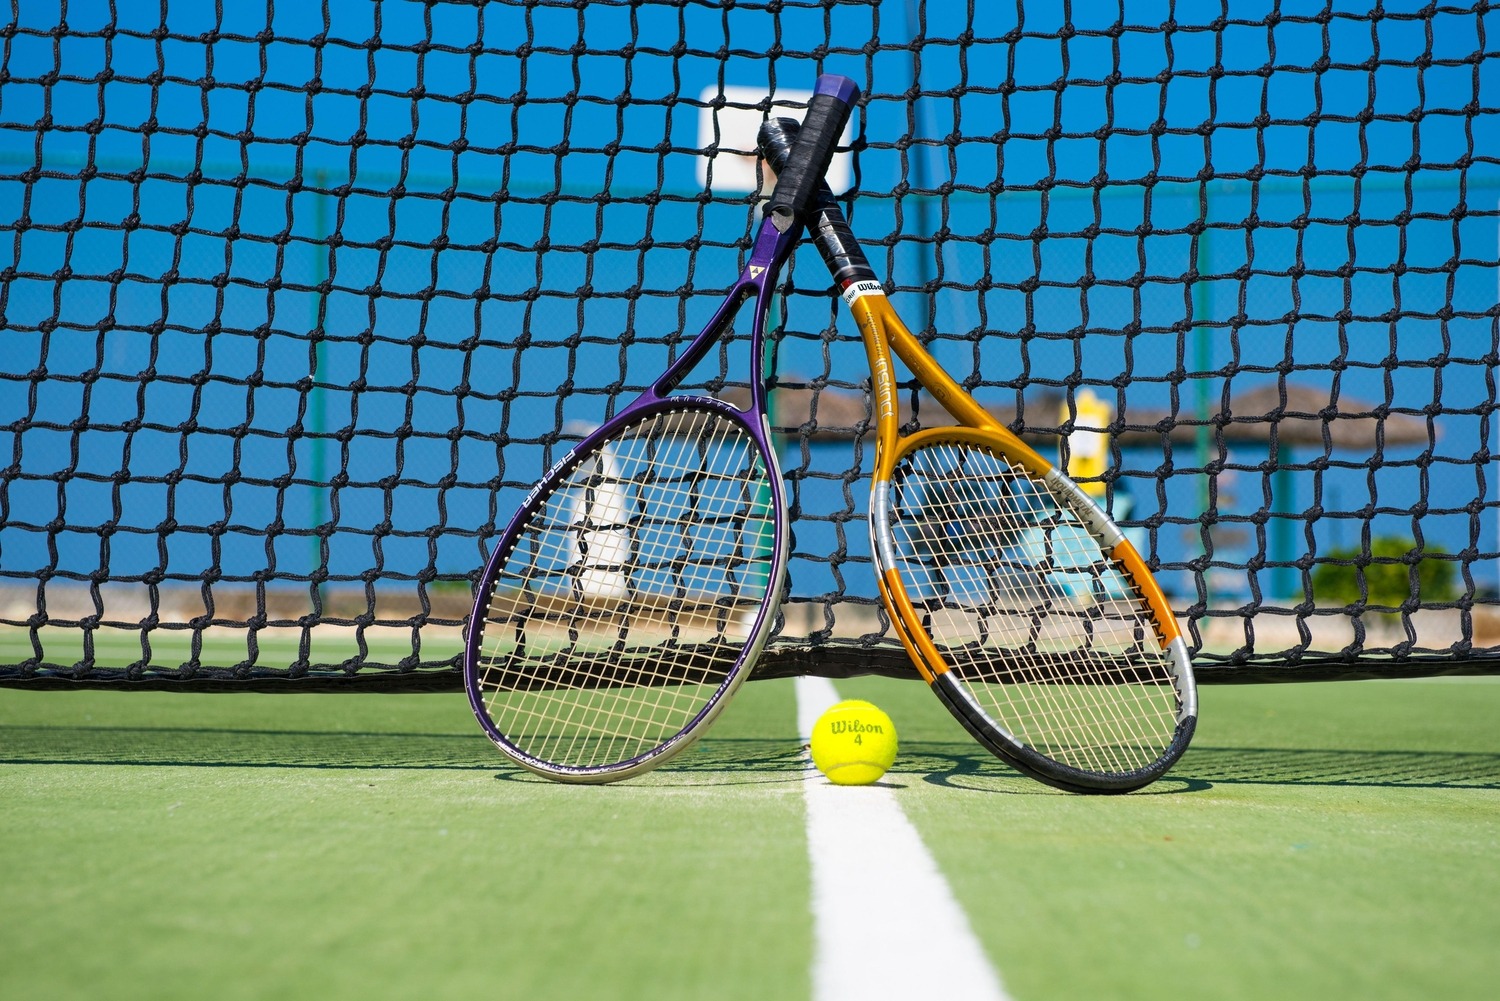 Two tennis racquets leaned up against a net with a ball